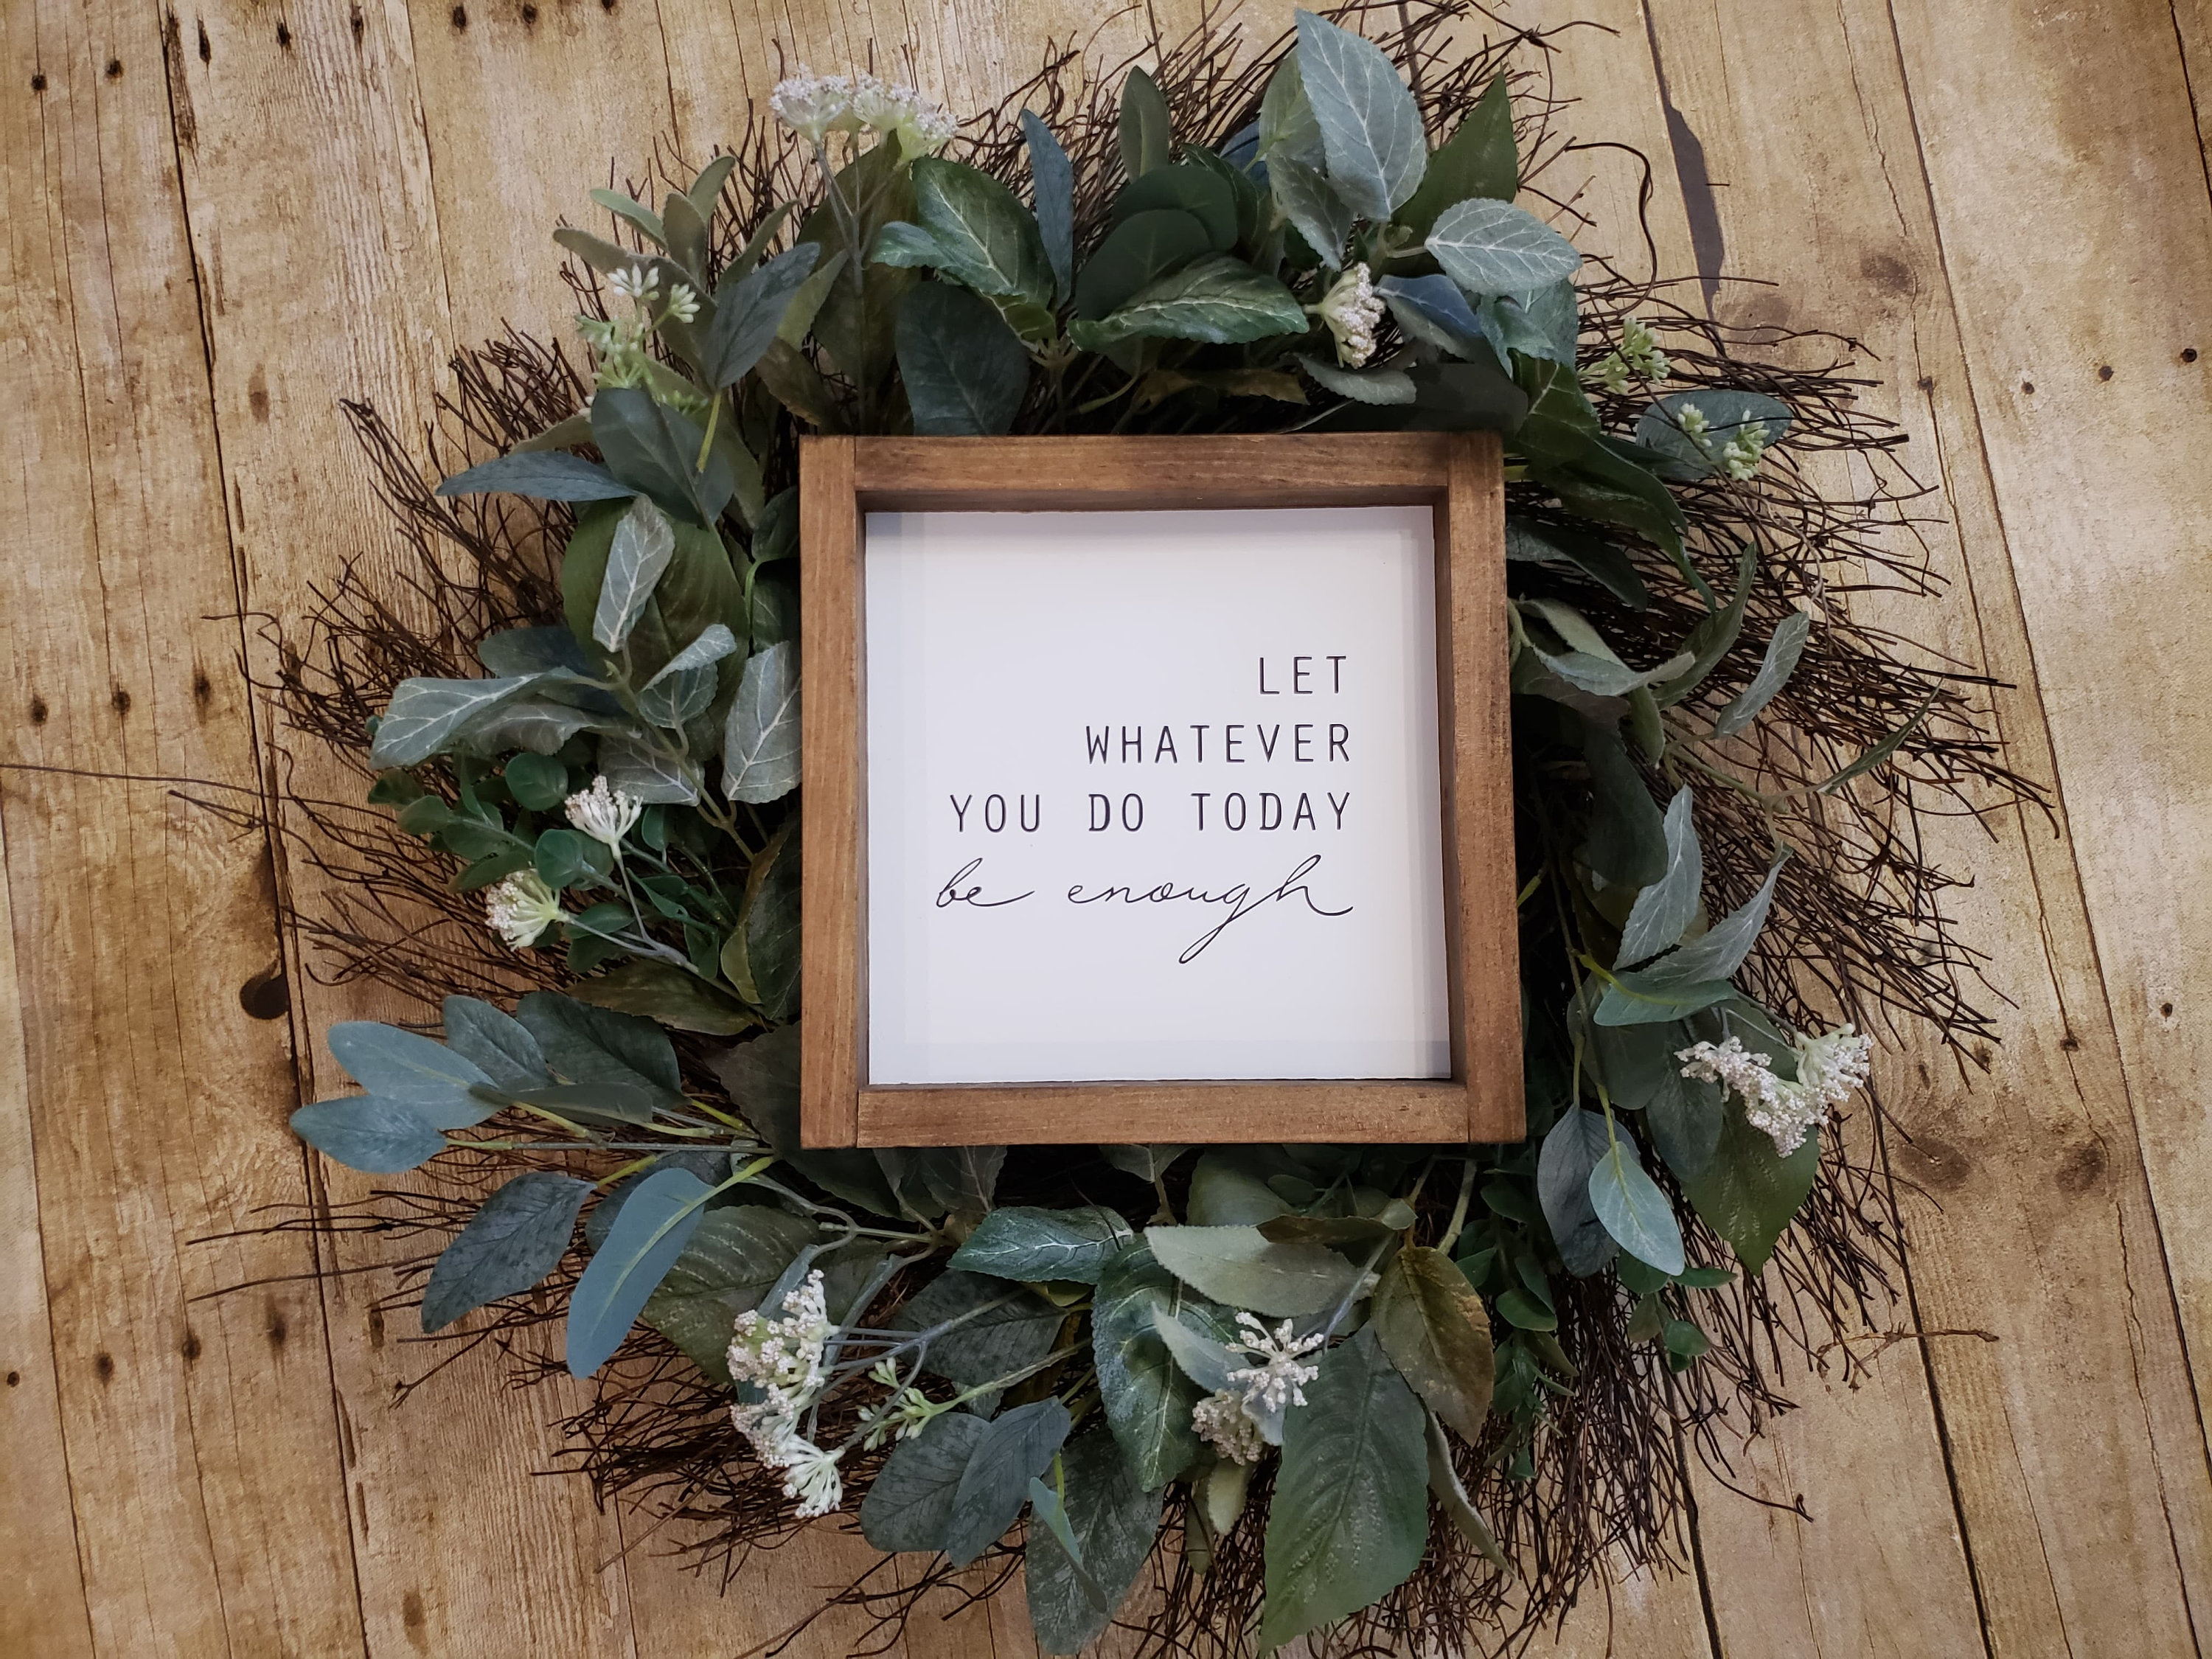 Inspirational Signs, Inspirational Gifts, Inspirational Art, Inspire Sign,  Motivation Sign, Inspire Decor, Uplifting Sign, Inspire Wall Art with regard to Let Whatever You Do Today Be Enough Wood Wall Decor (Image 12 of 30)